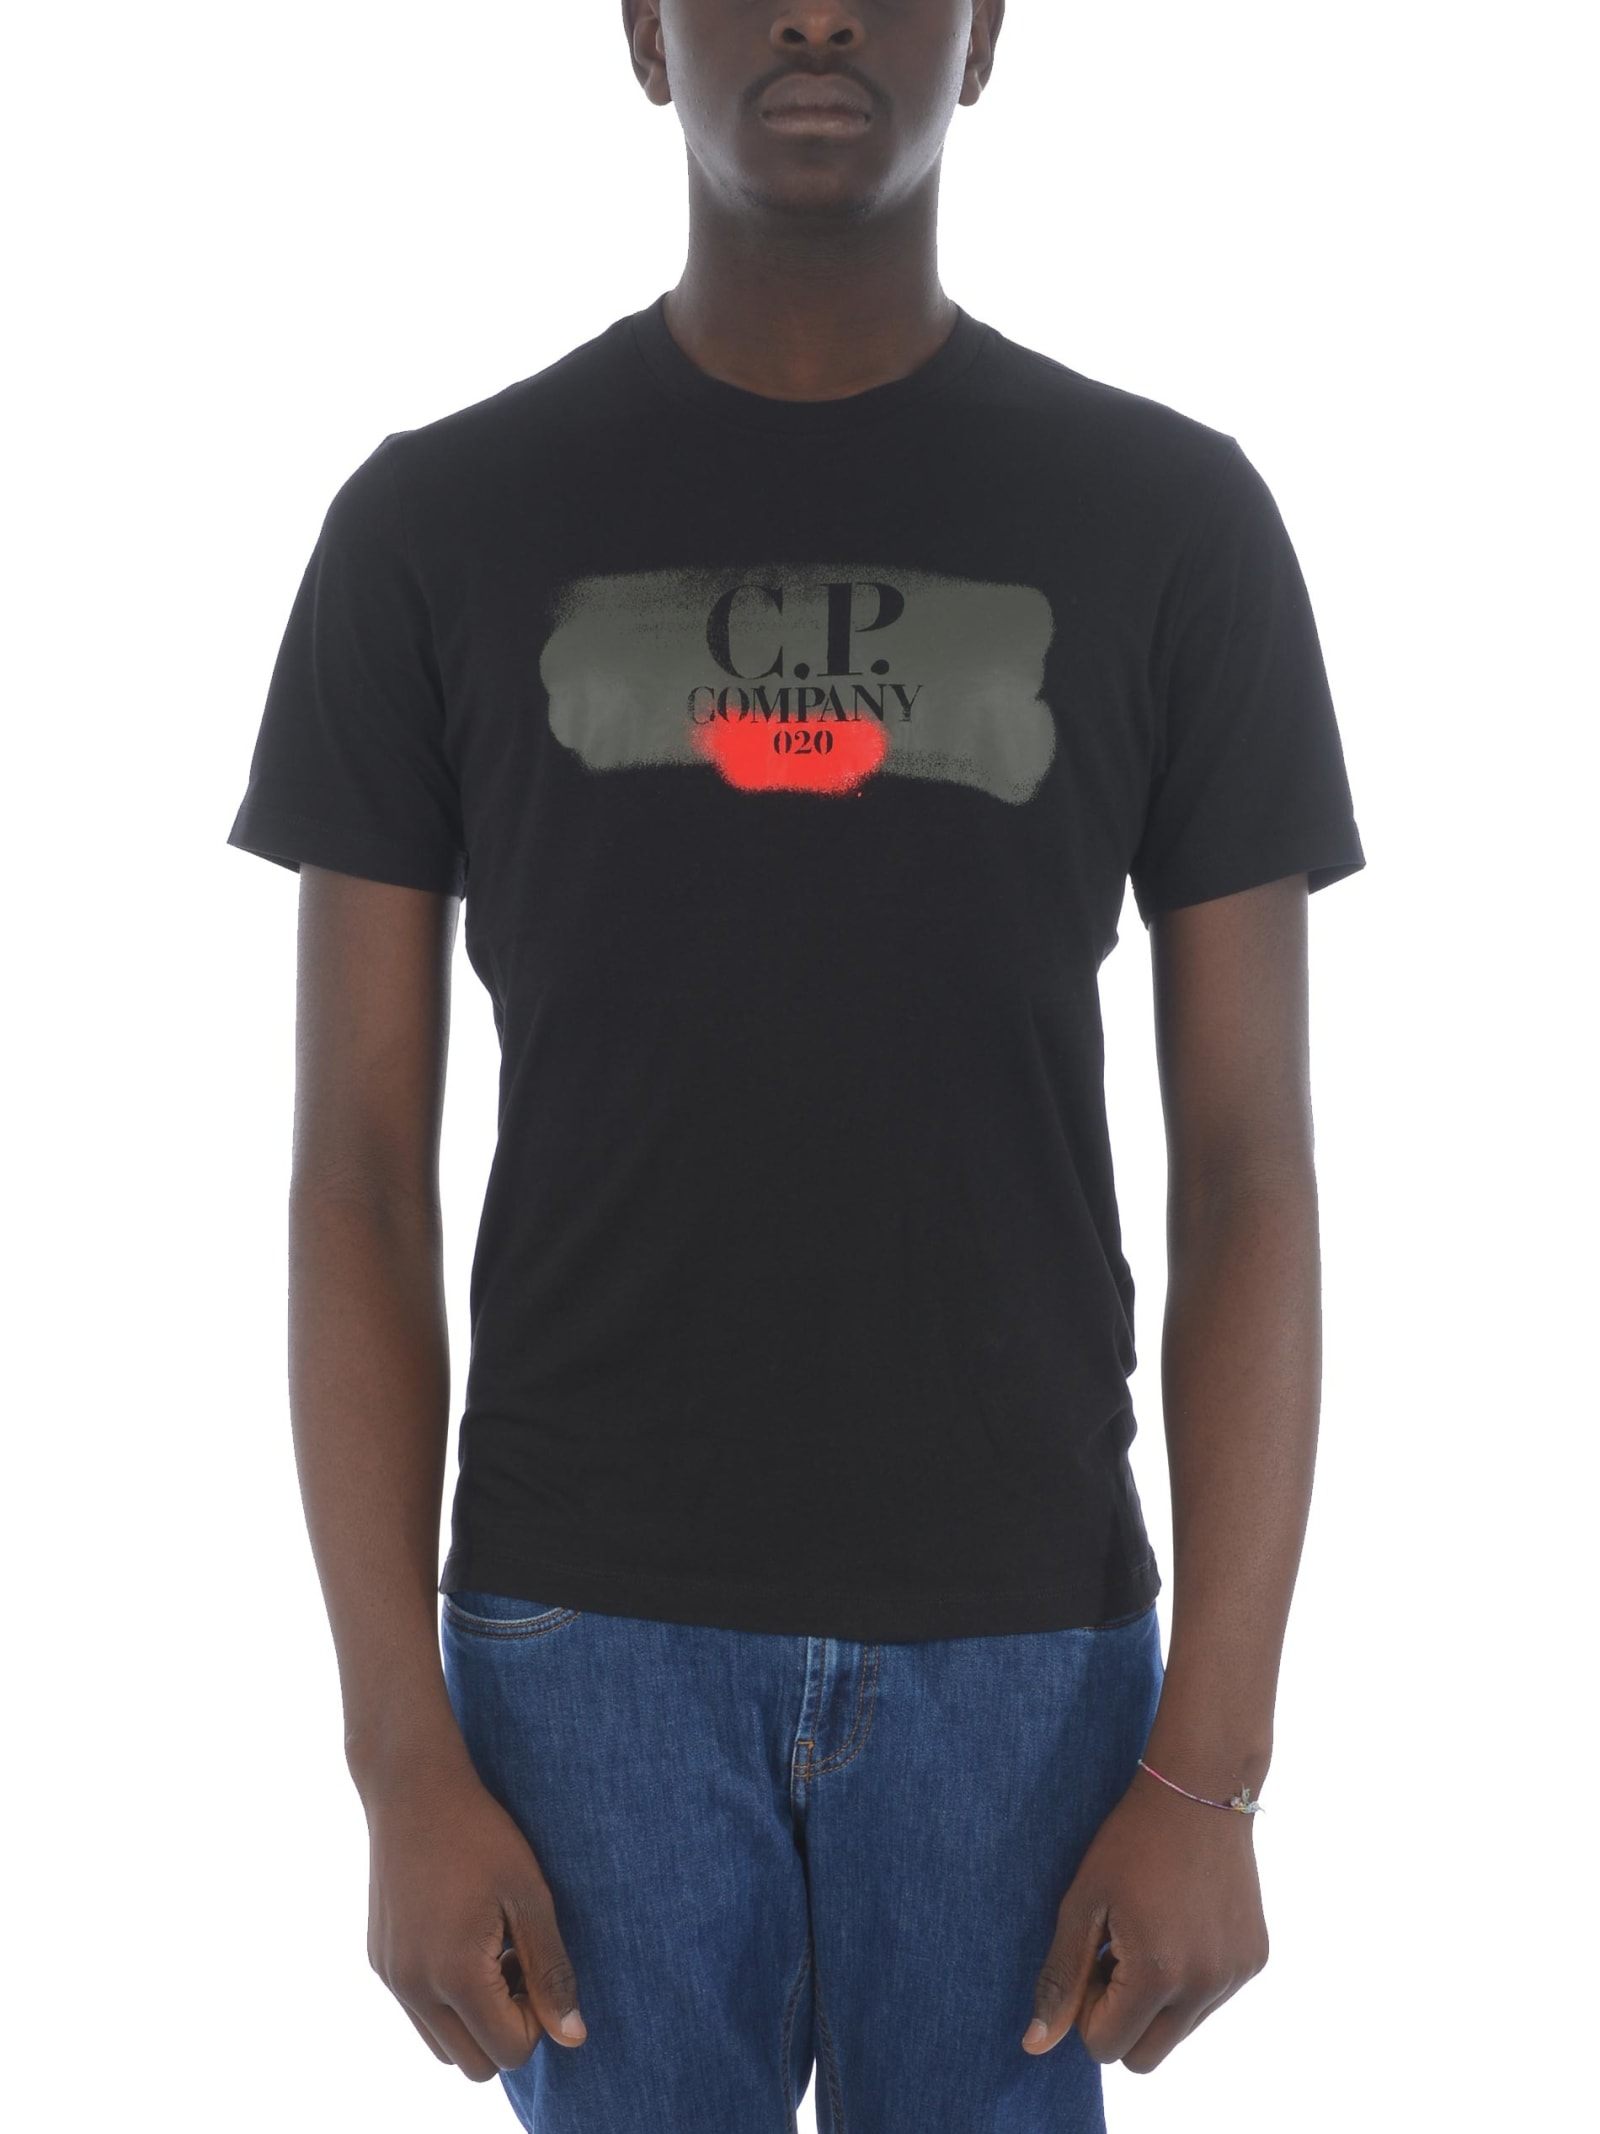 C.P. Company Short Sleeve T-Shirt